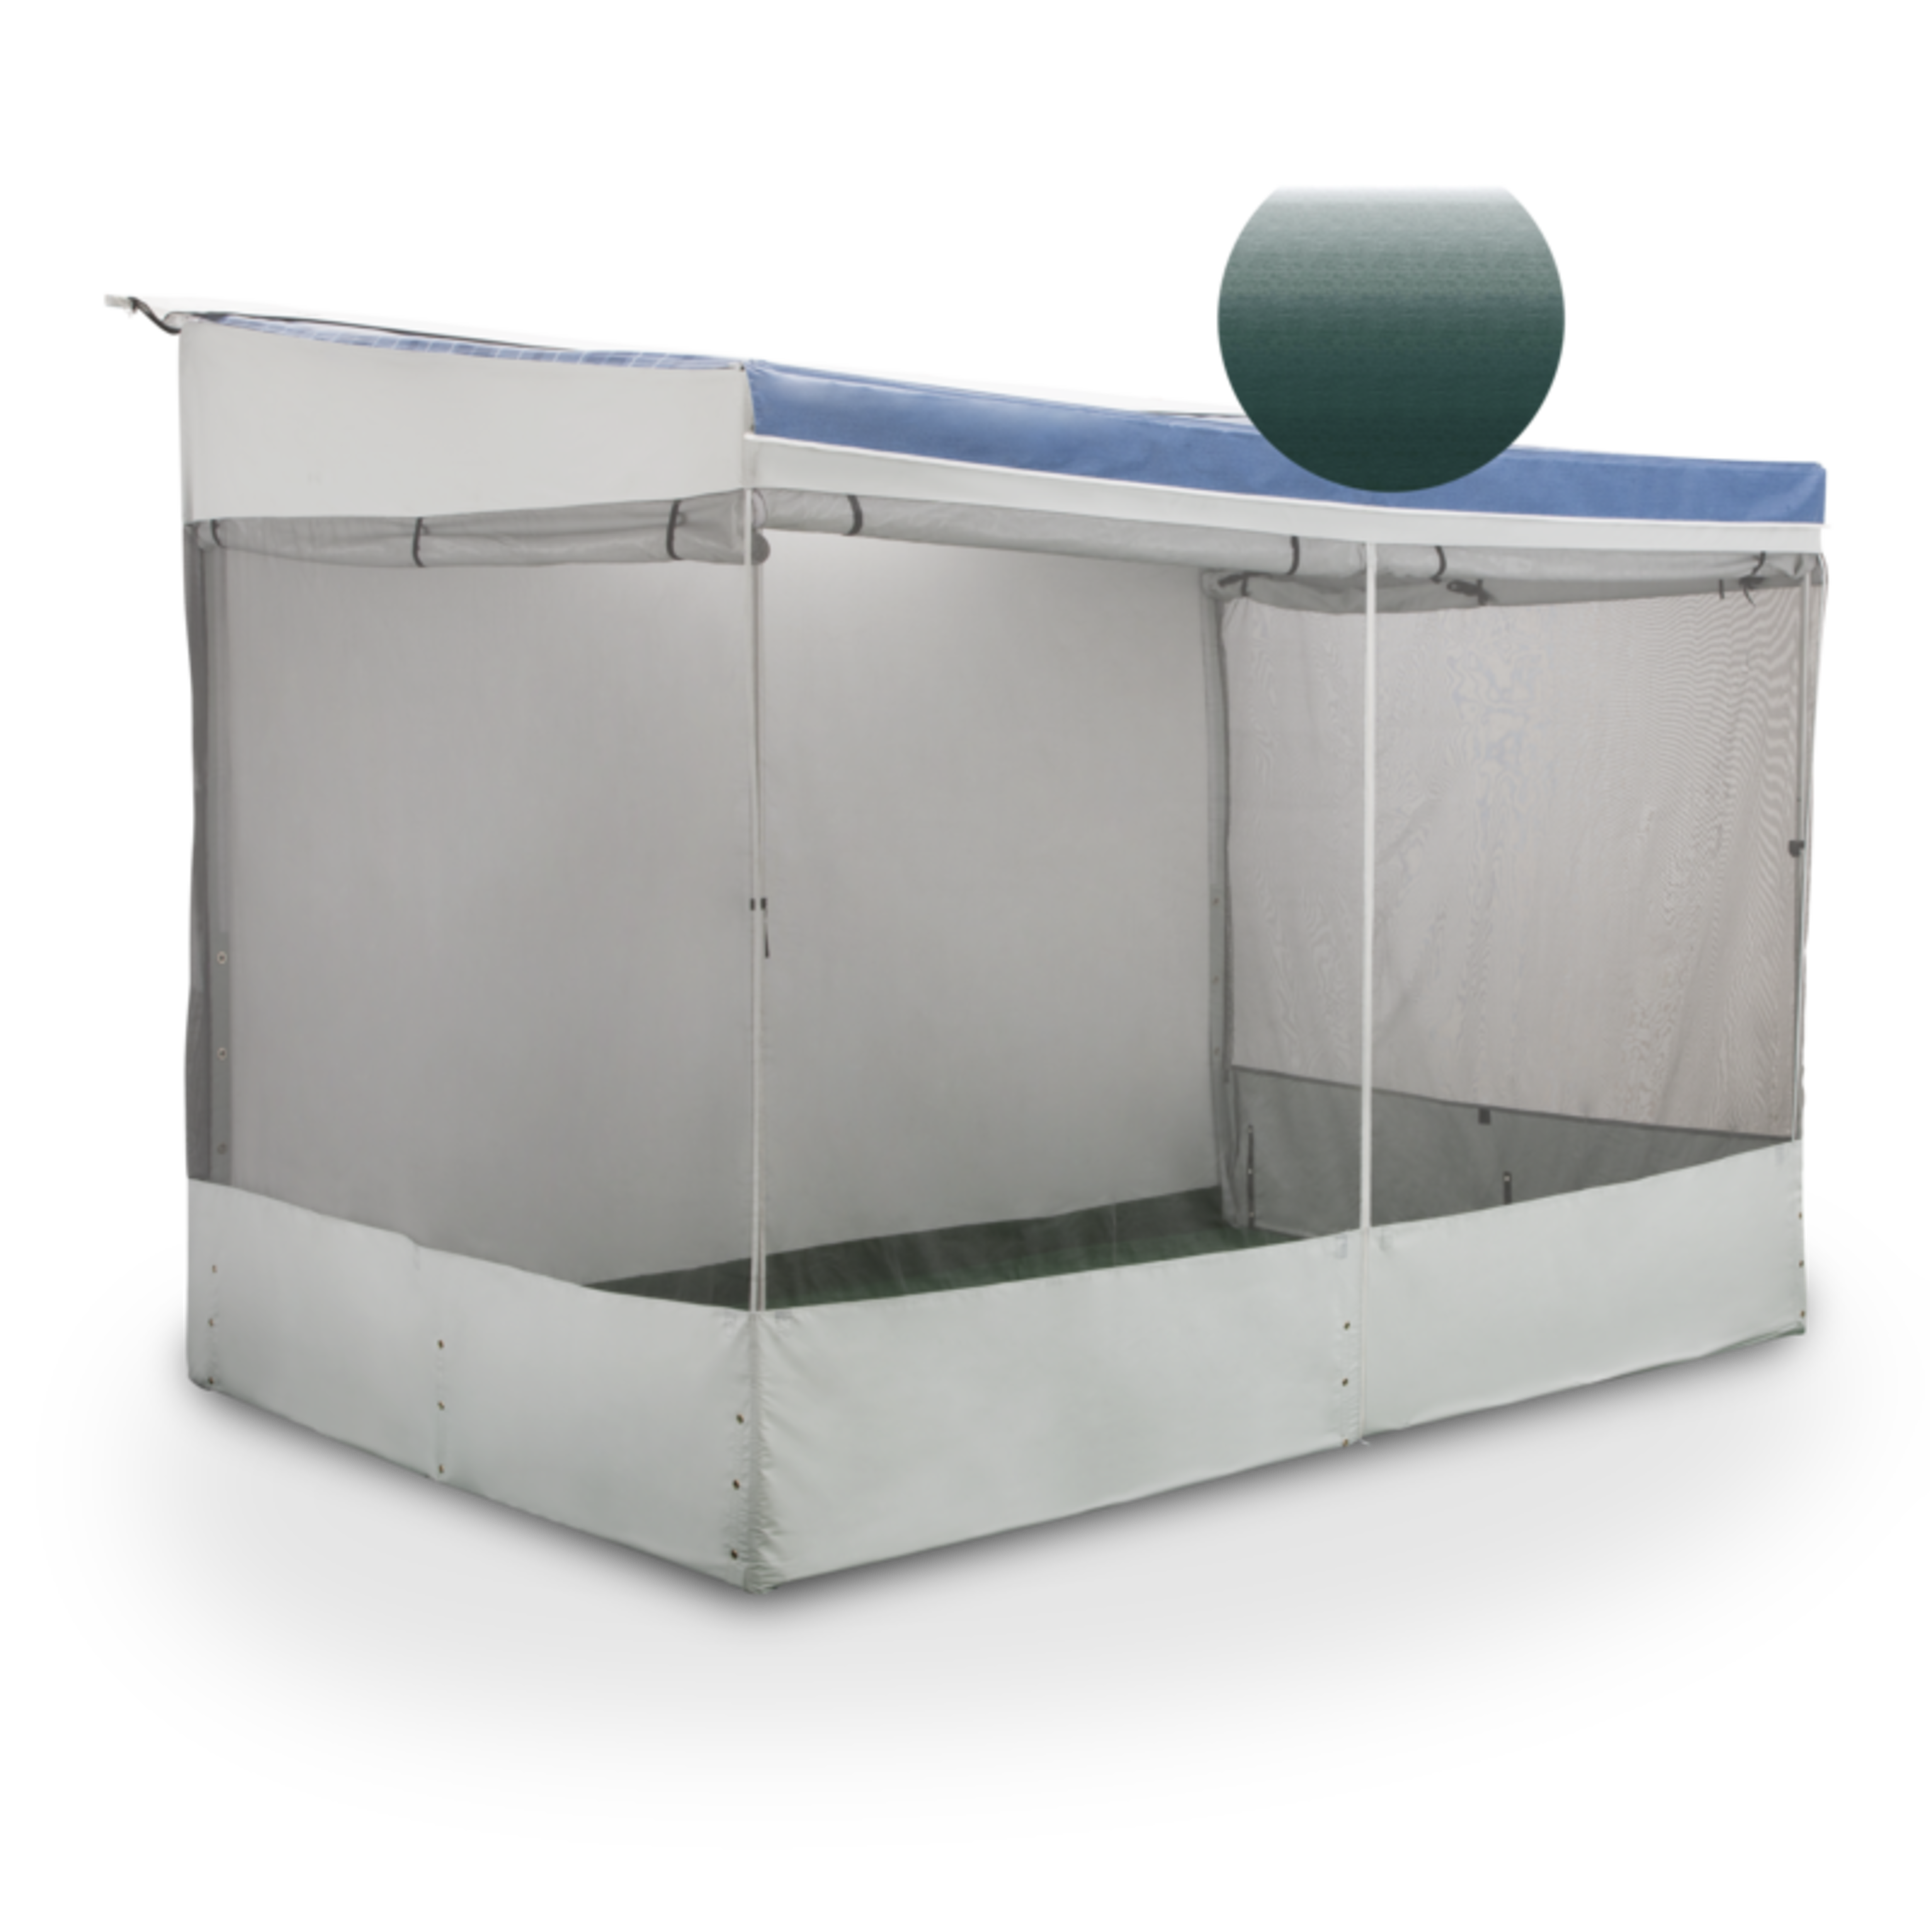 Dometic Trim Line Case Awning